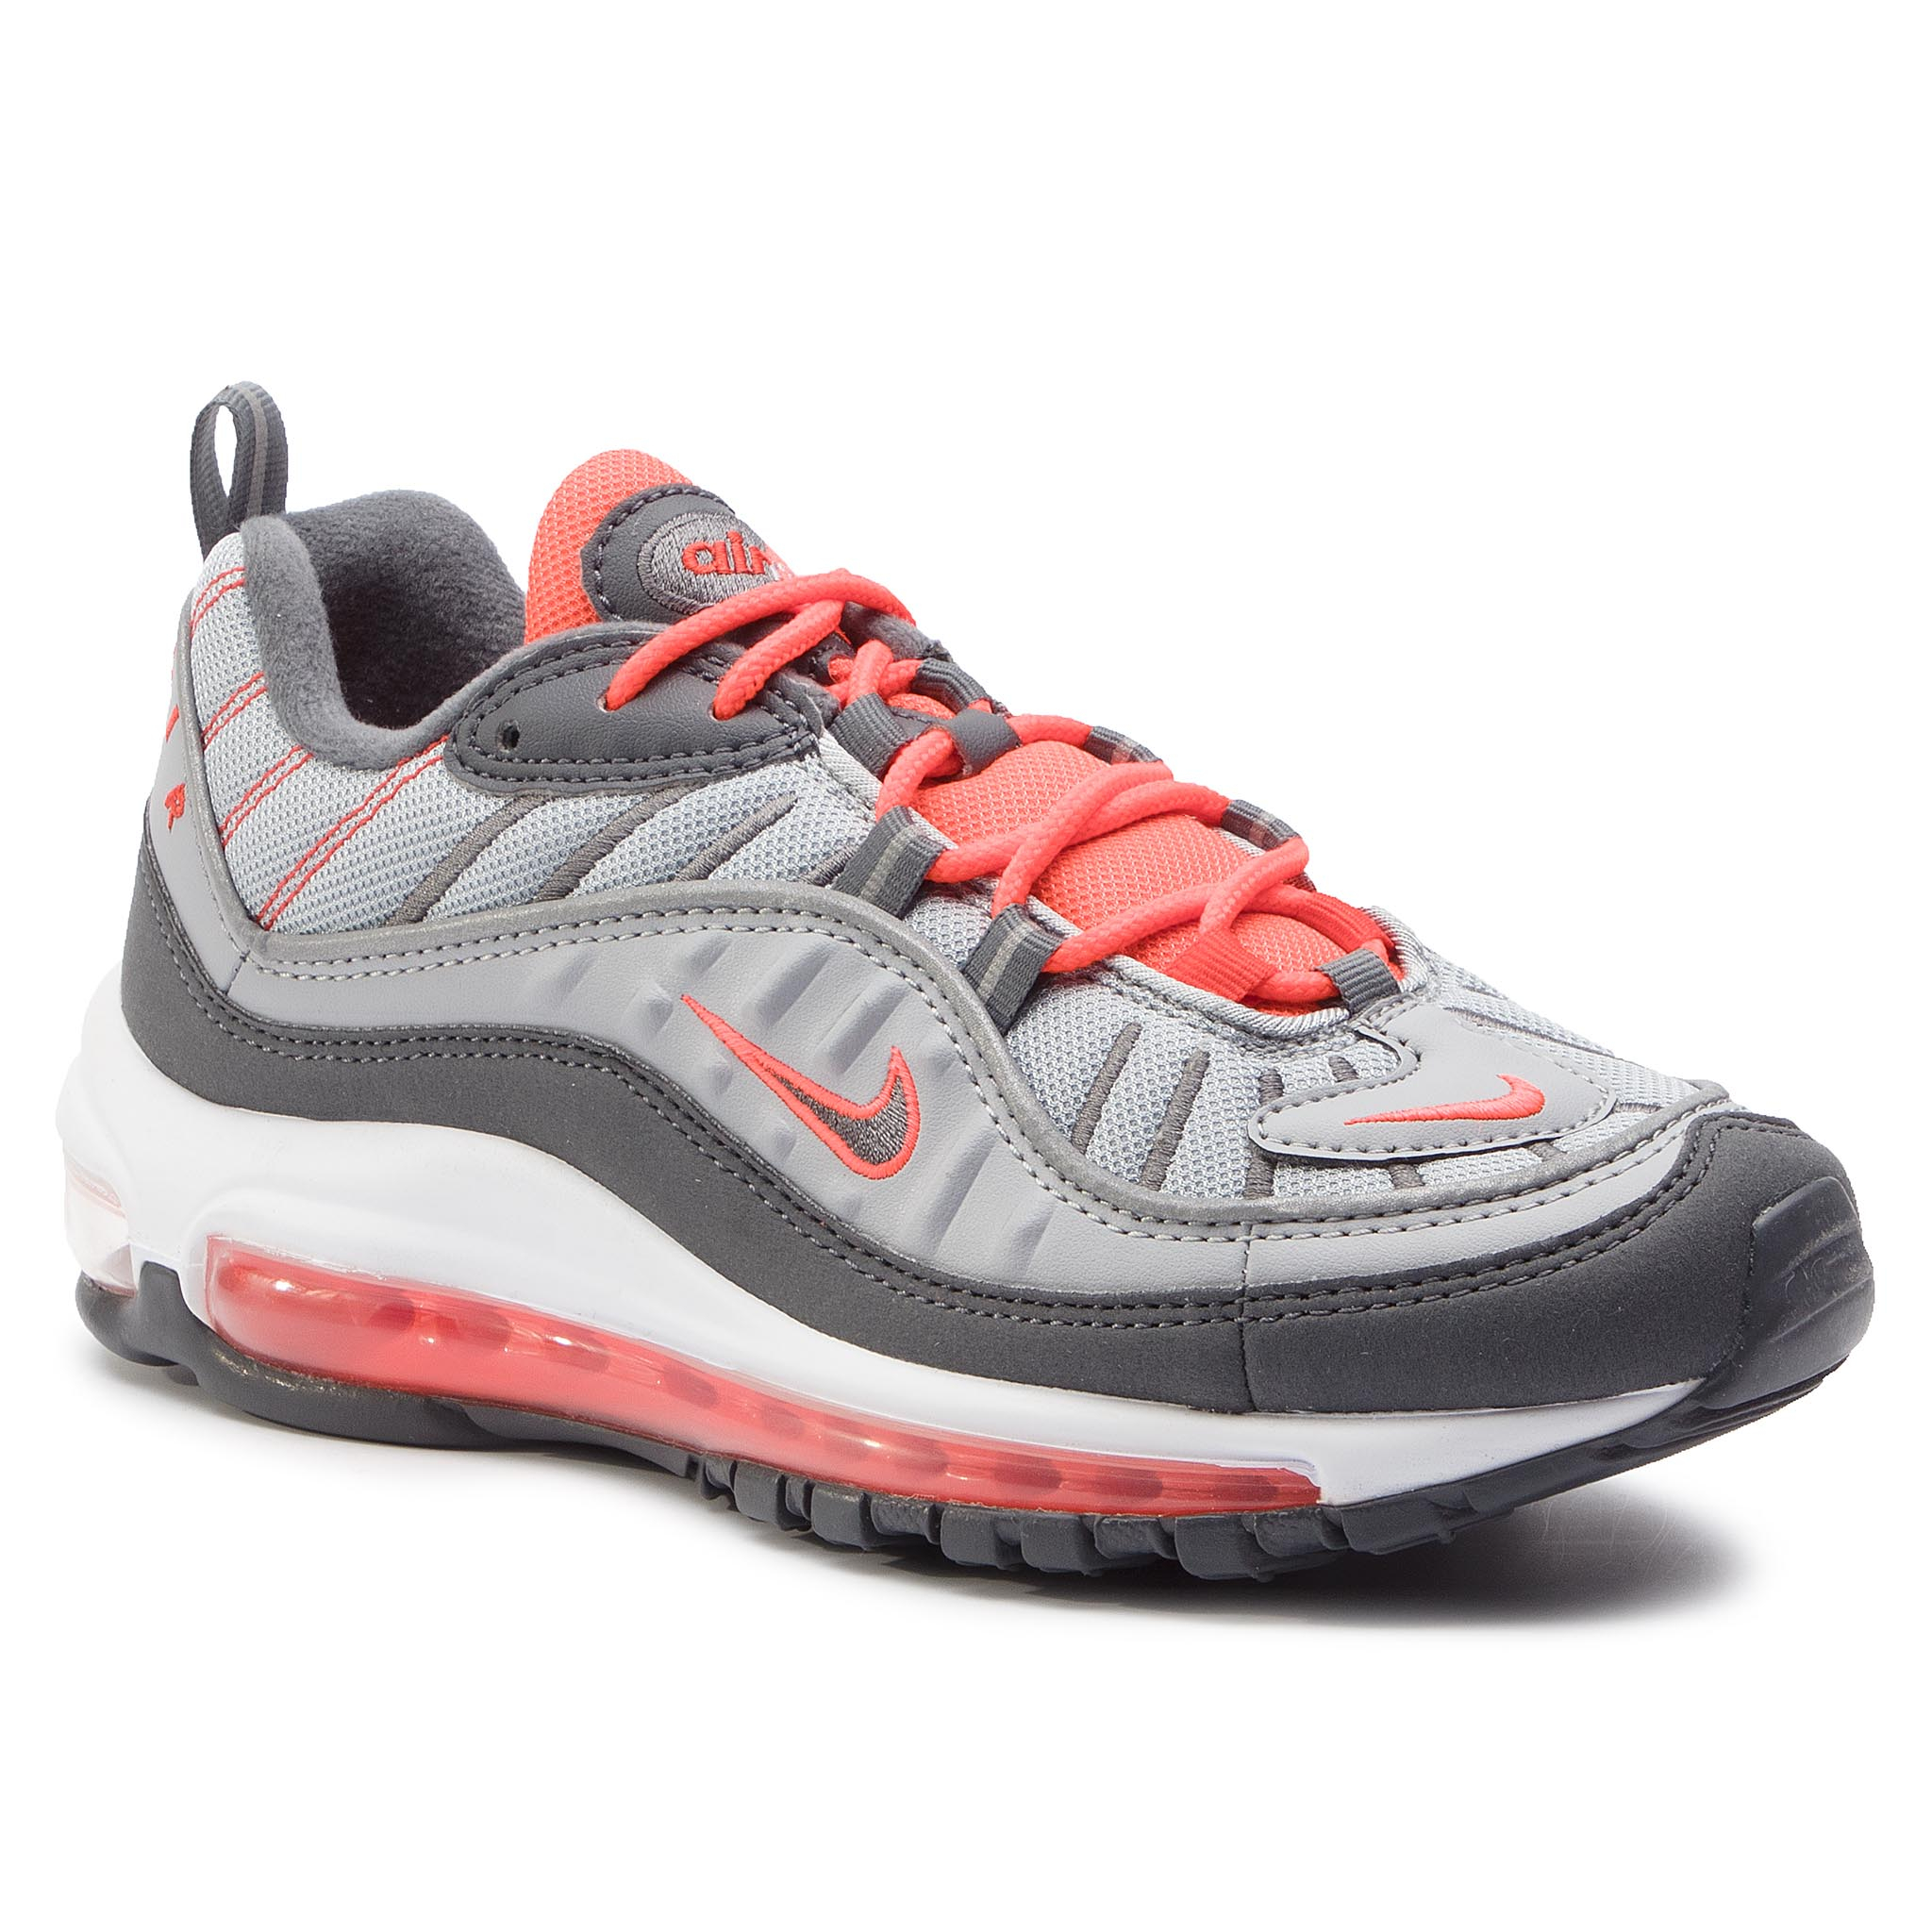 Sneaker Nike Zapatos NIKE - Air Max 98 640744 006 Wolf Grey/Dark Grey